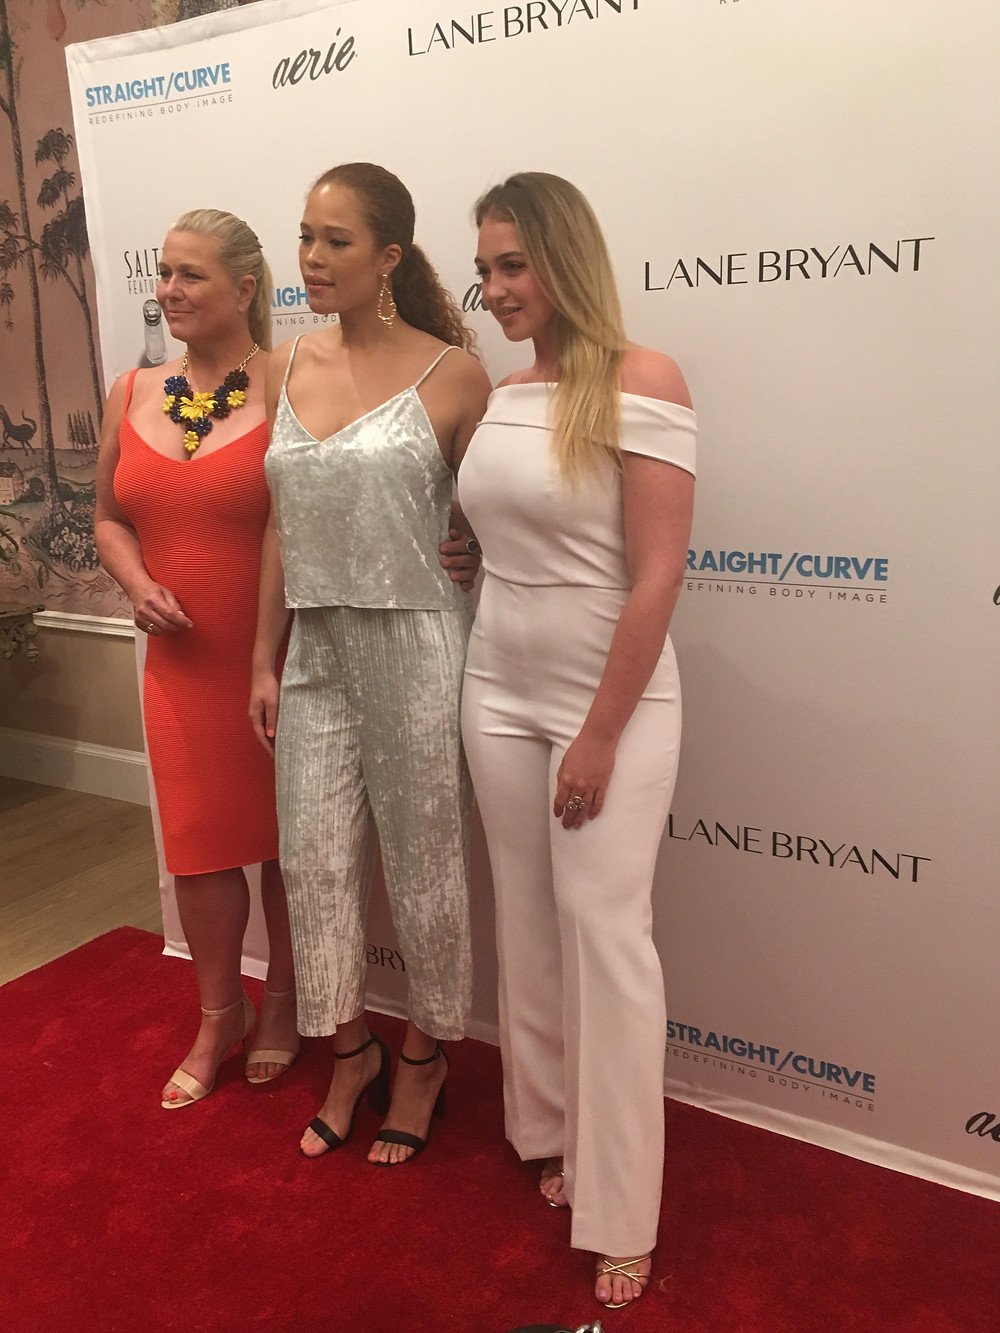 Emme, Sabina Karlsson and Iskra Lawrence at Straight/Curve premiere.